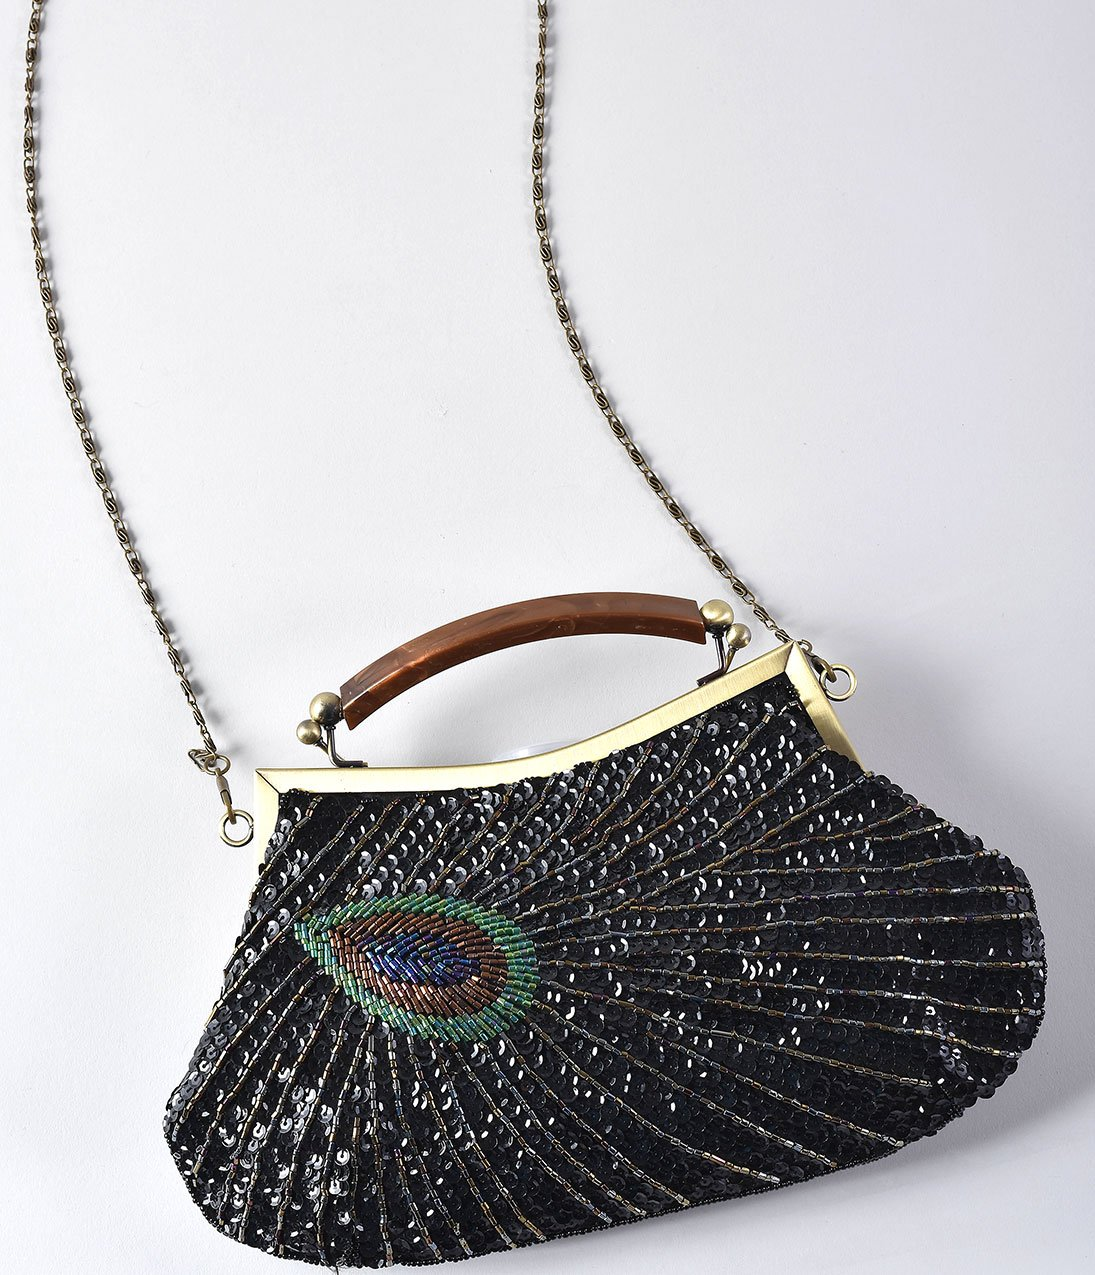 Unique_Vintage_1920s_Style_Black_Peacock_Sequin_Flapper_Handbag_1_2048x2048.jpg